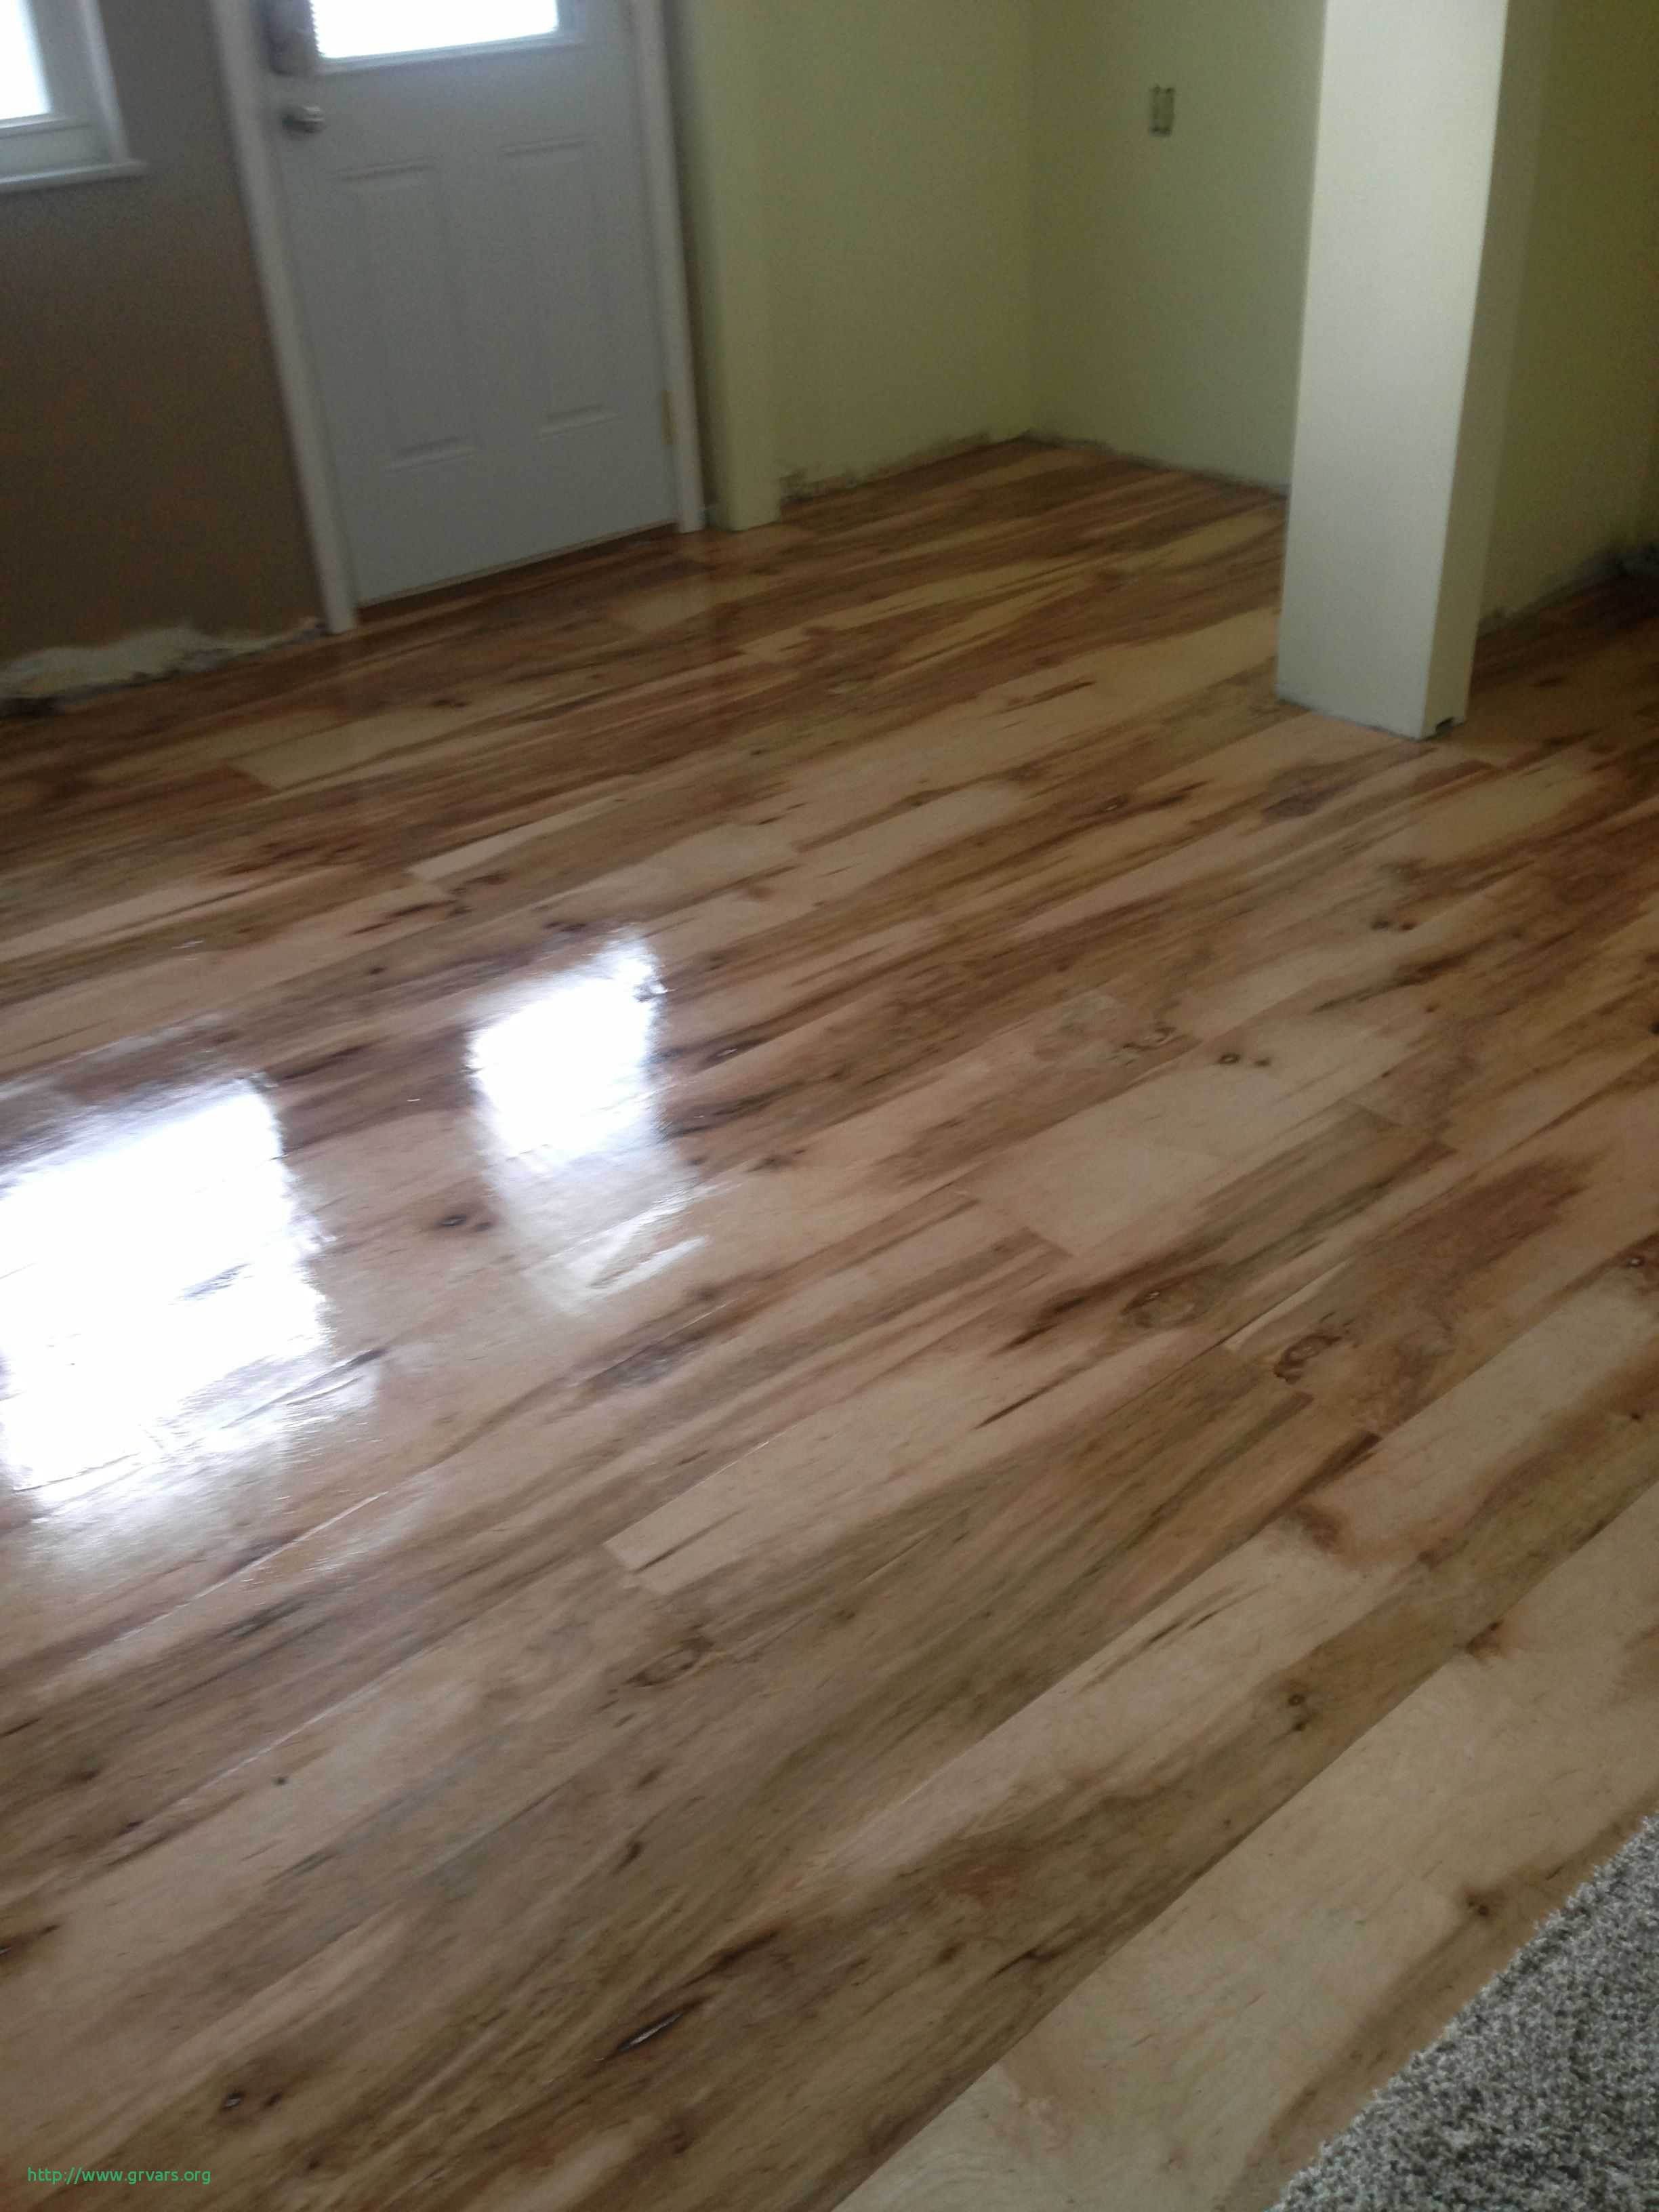 20 Great Hardwood Flooring Dealers Near Me 2021 free download hardwood flooring dealers near me of flooring stores in tampa ac289lagant engaging discount hardwood flooring throughout flooring stores in tampa ac289lagant engaging discount hardwood floor